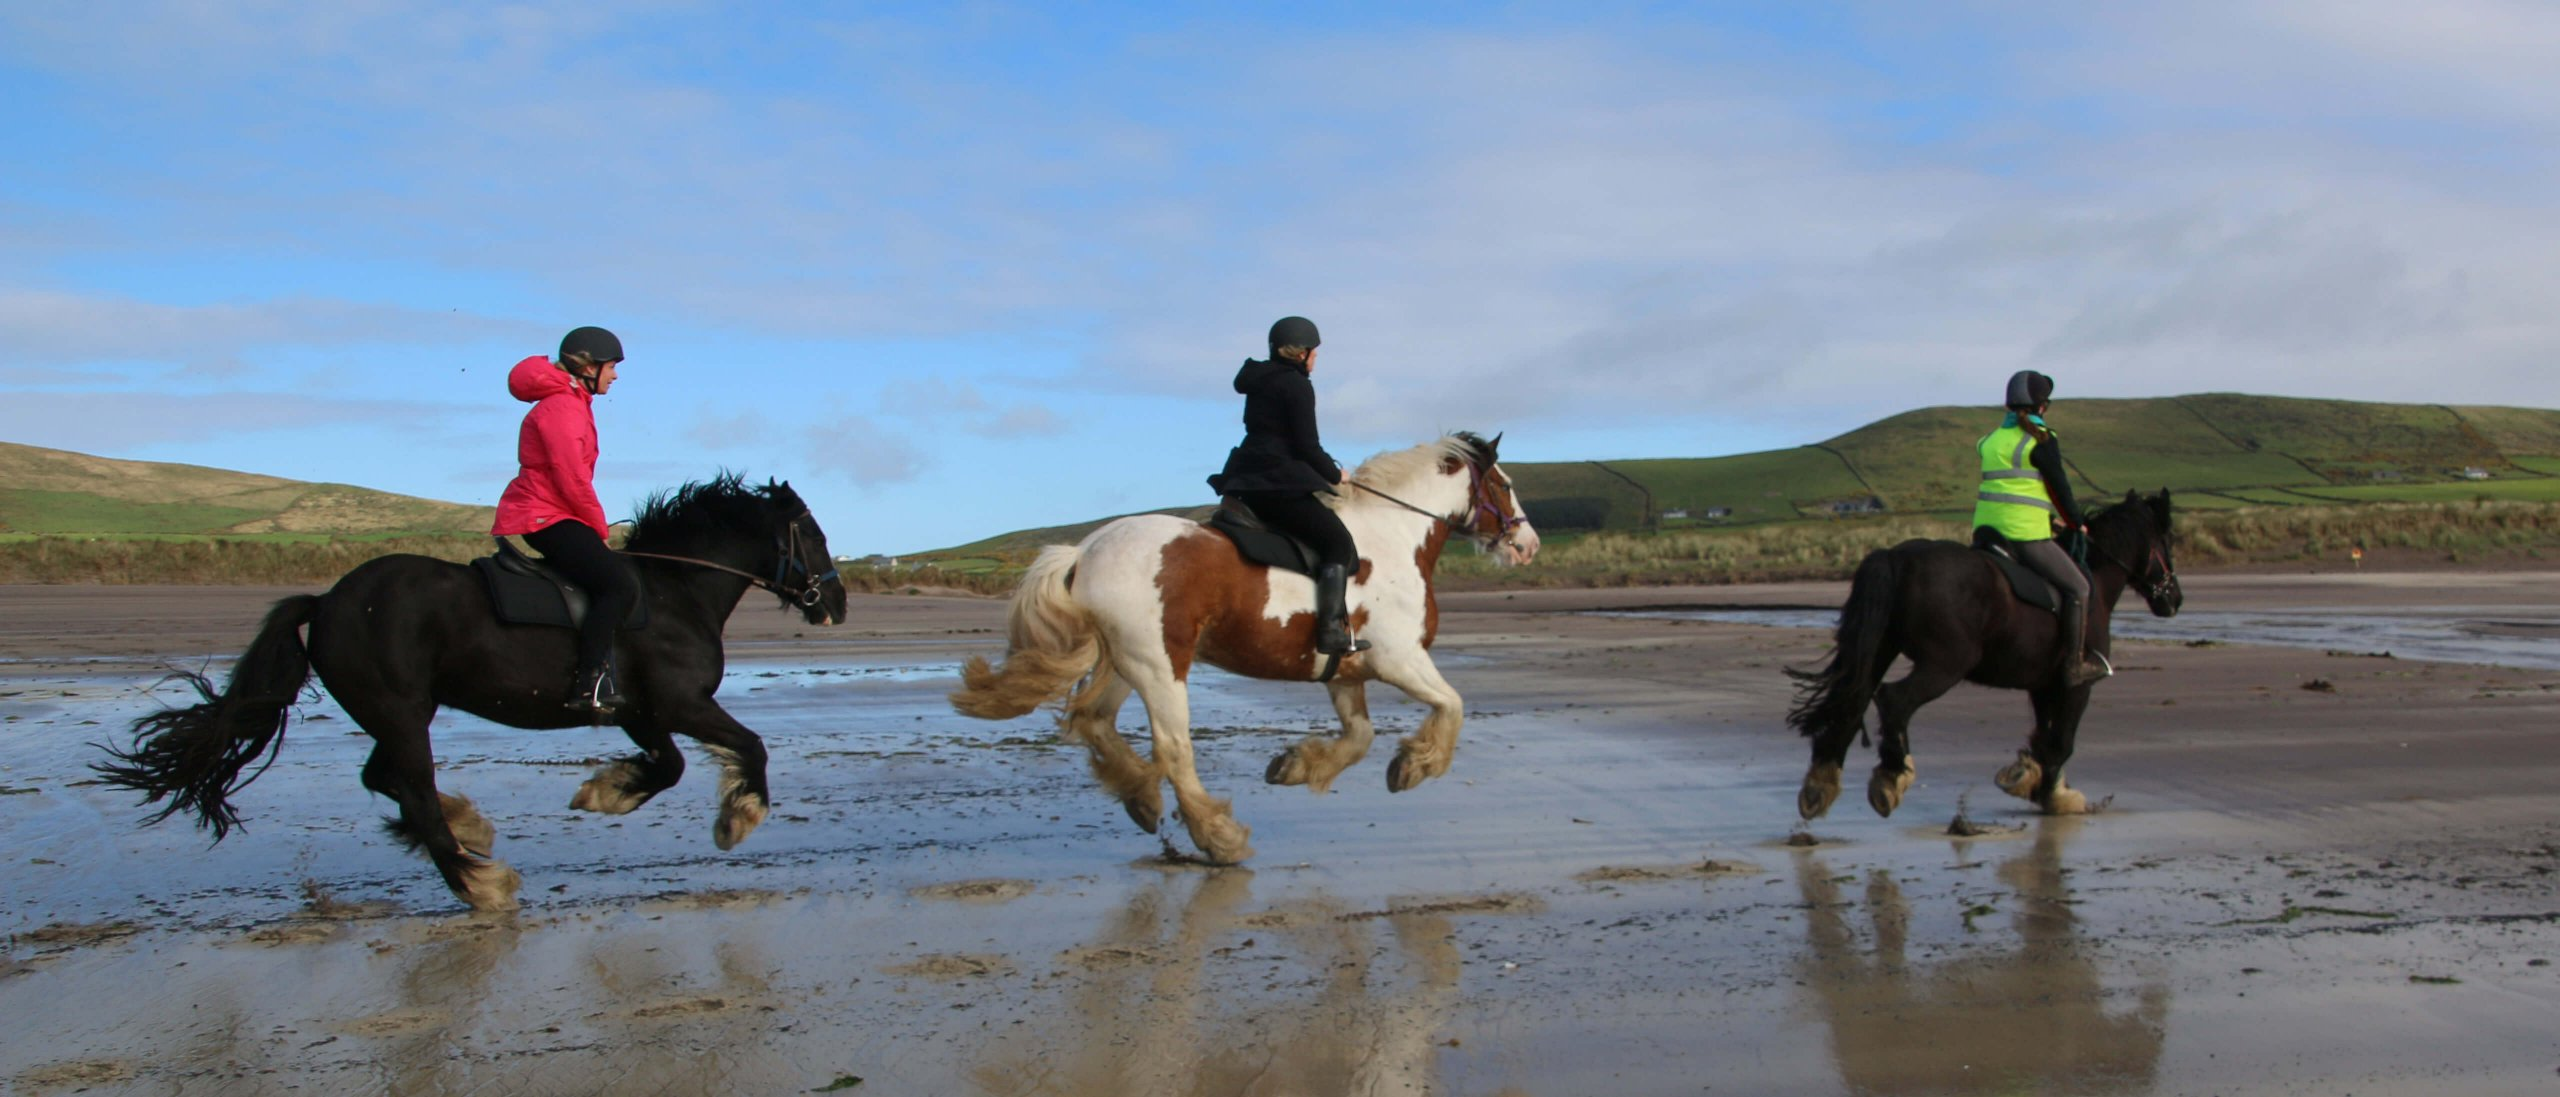 Three Vagabond tour guests gallop on horseback along a beach in Ireland